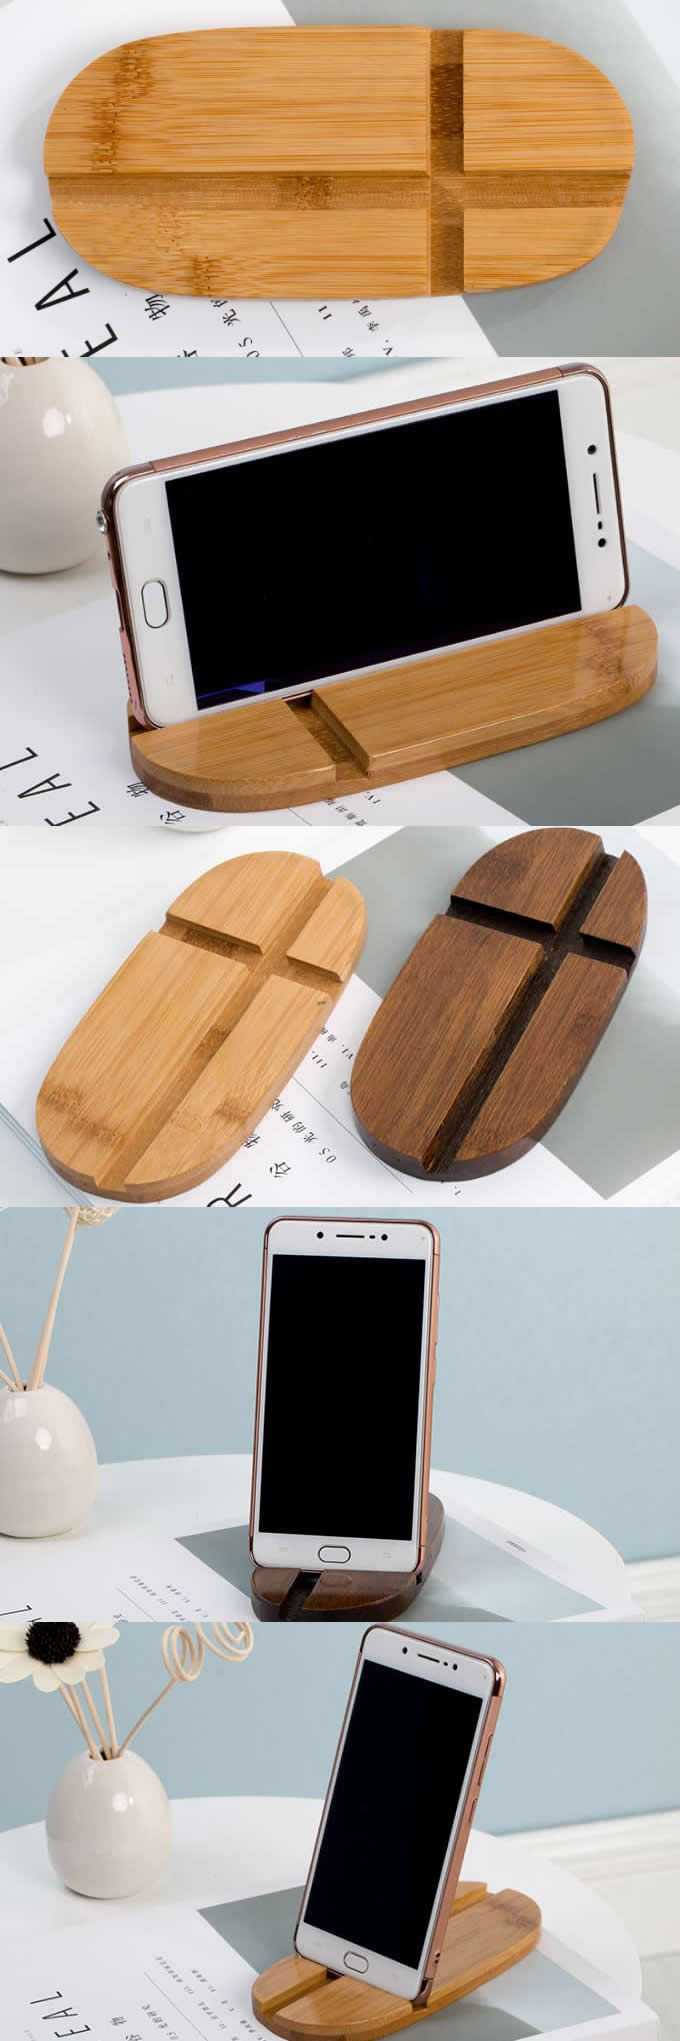 Wooden Wood iPhone Cell Phone Smartphone iPad Stand Mount Holder Business Card Display Stand Holder desktop ornaments for iPhone 77 Plus6s6s Plus and other smartphones